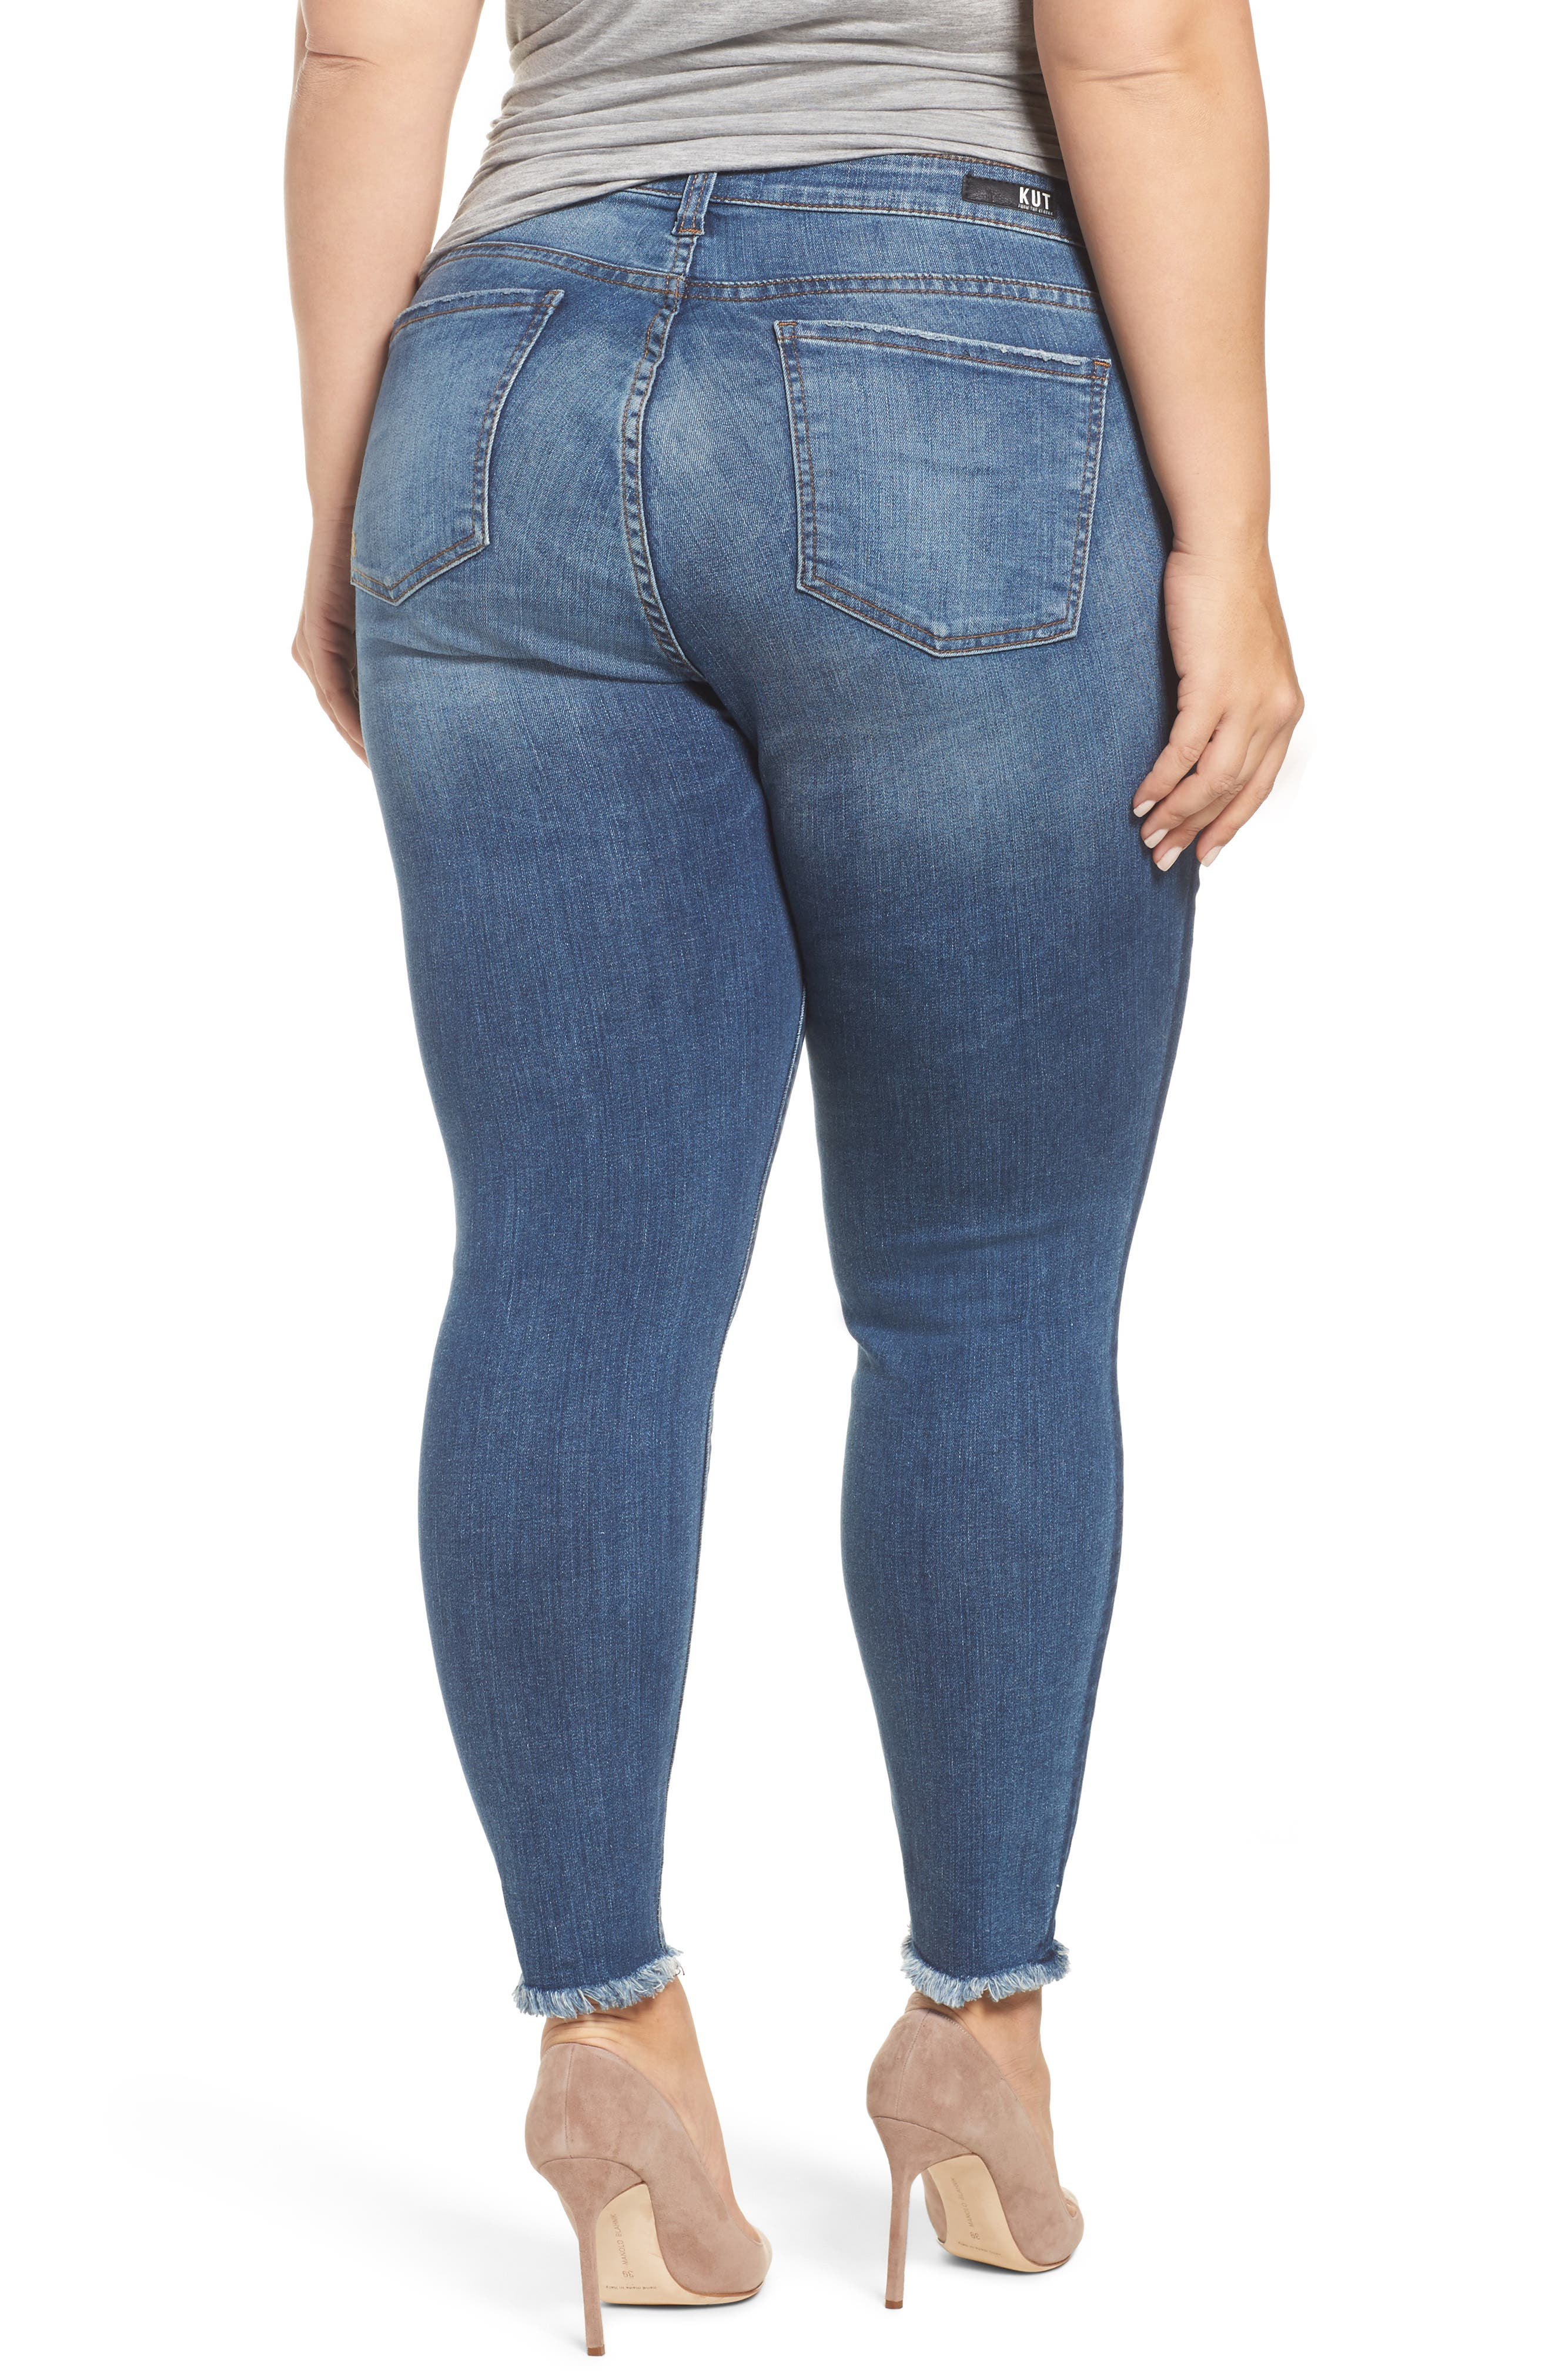 Alternate Image 3  - KUT from the Kloth Connie Frayed Skinny Ankle Jeans (Prolific) (Plus Size)